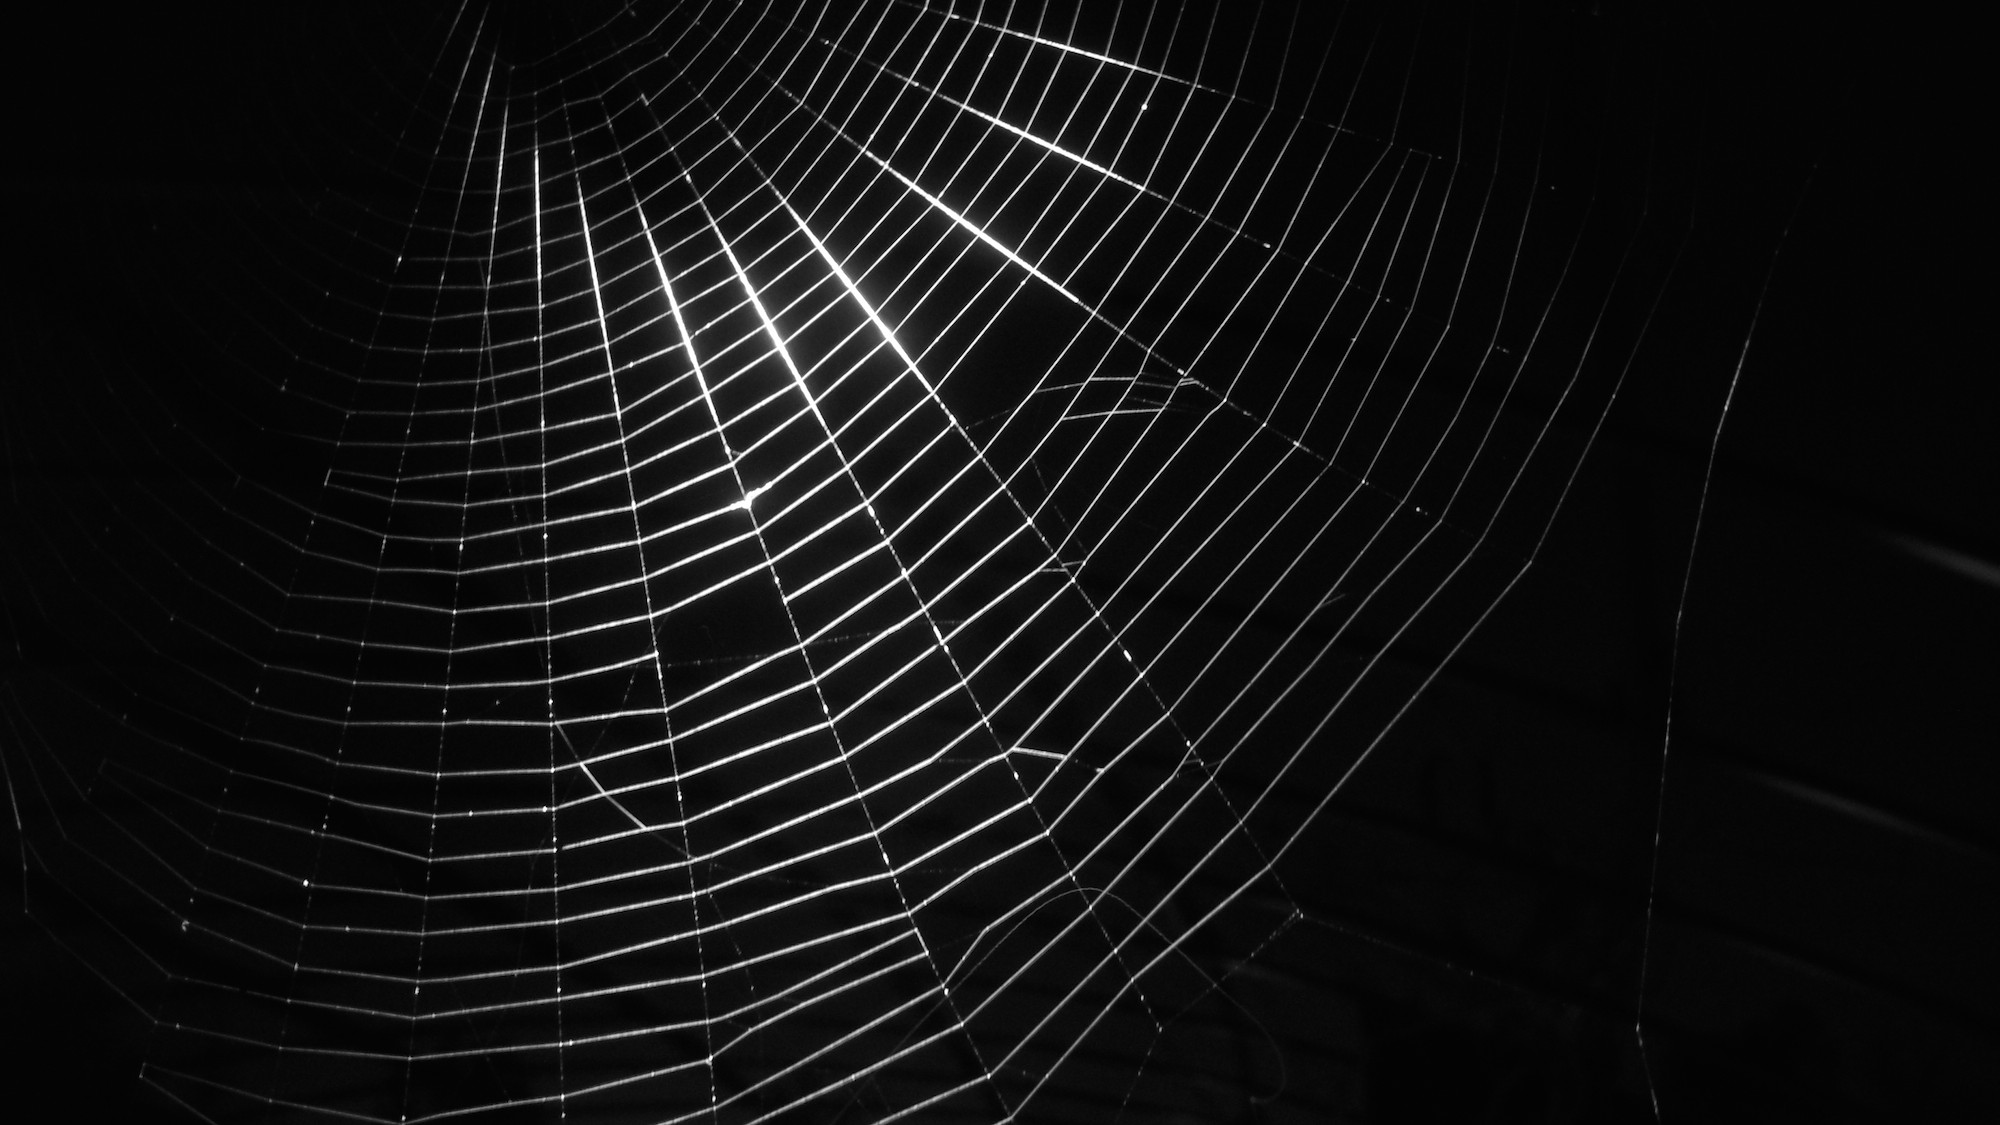 Arrests, Attacks, and Increasing Recognition: 2015 on the Dark Web